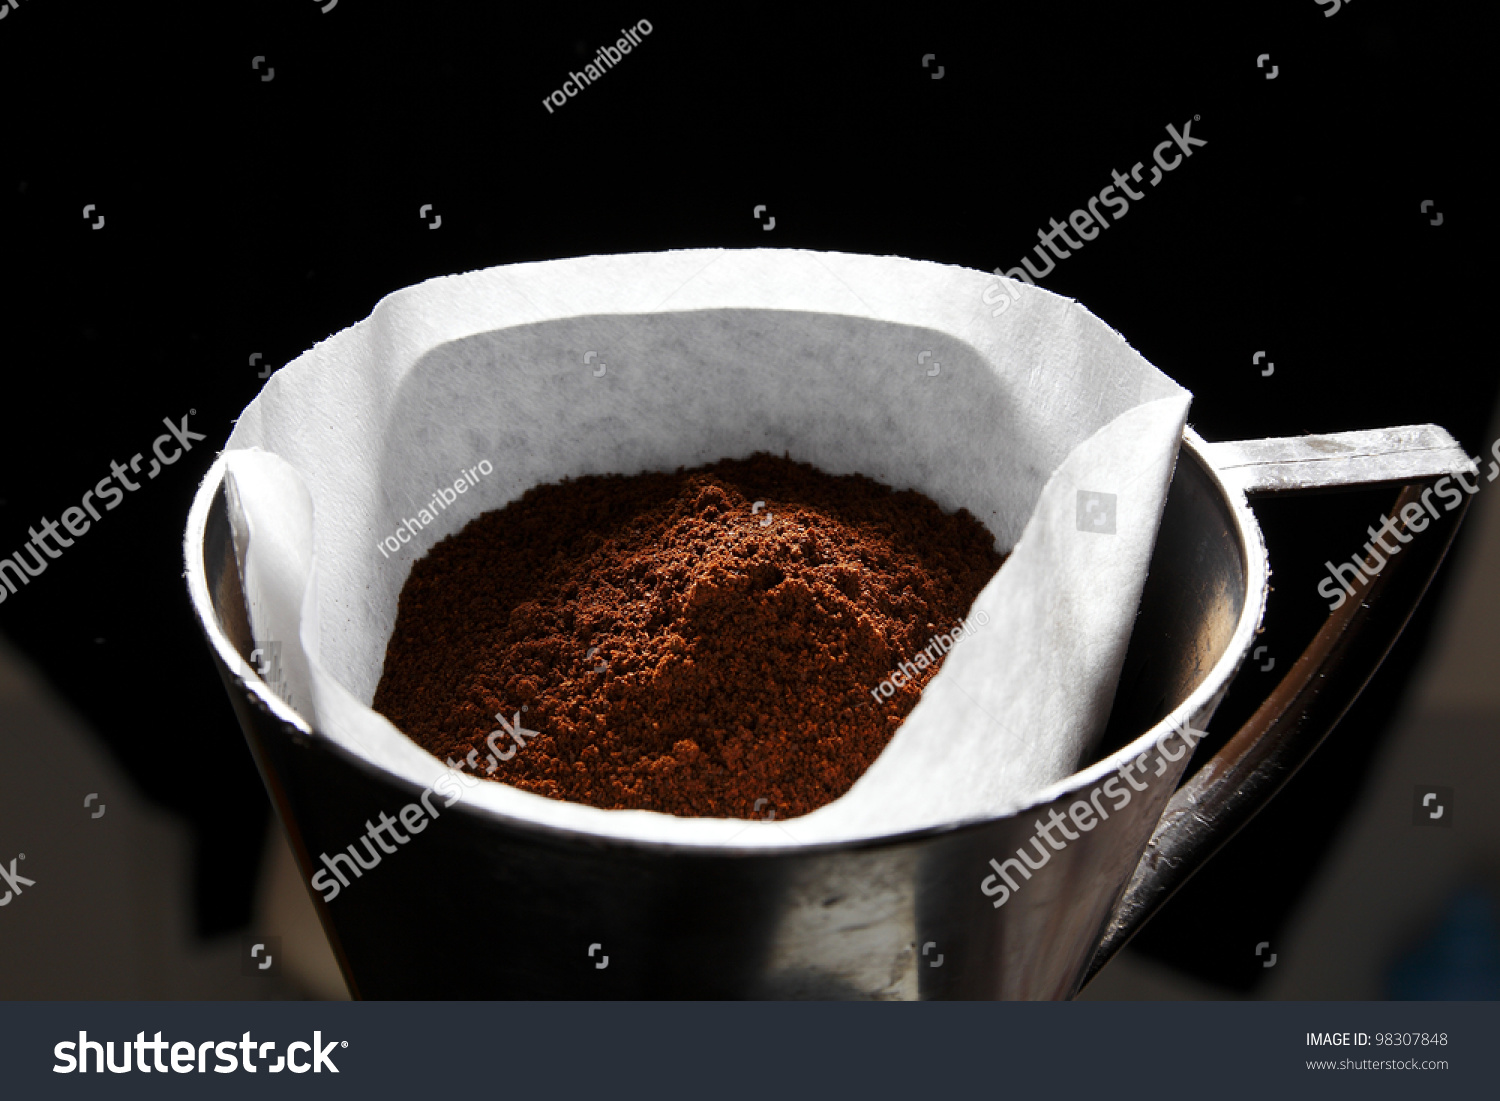 ground coffee stock photo - photo #22